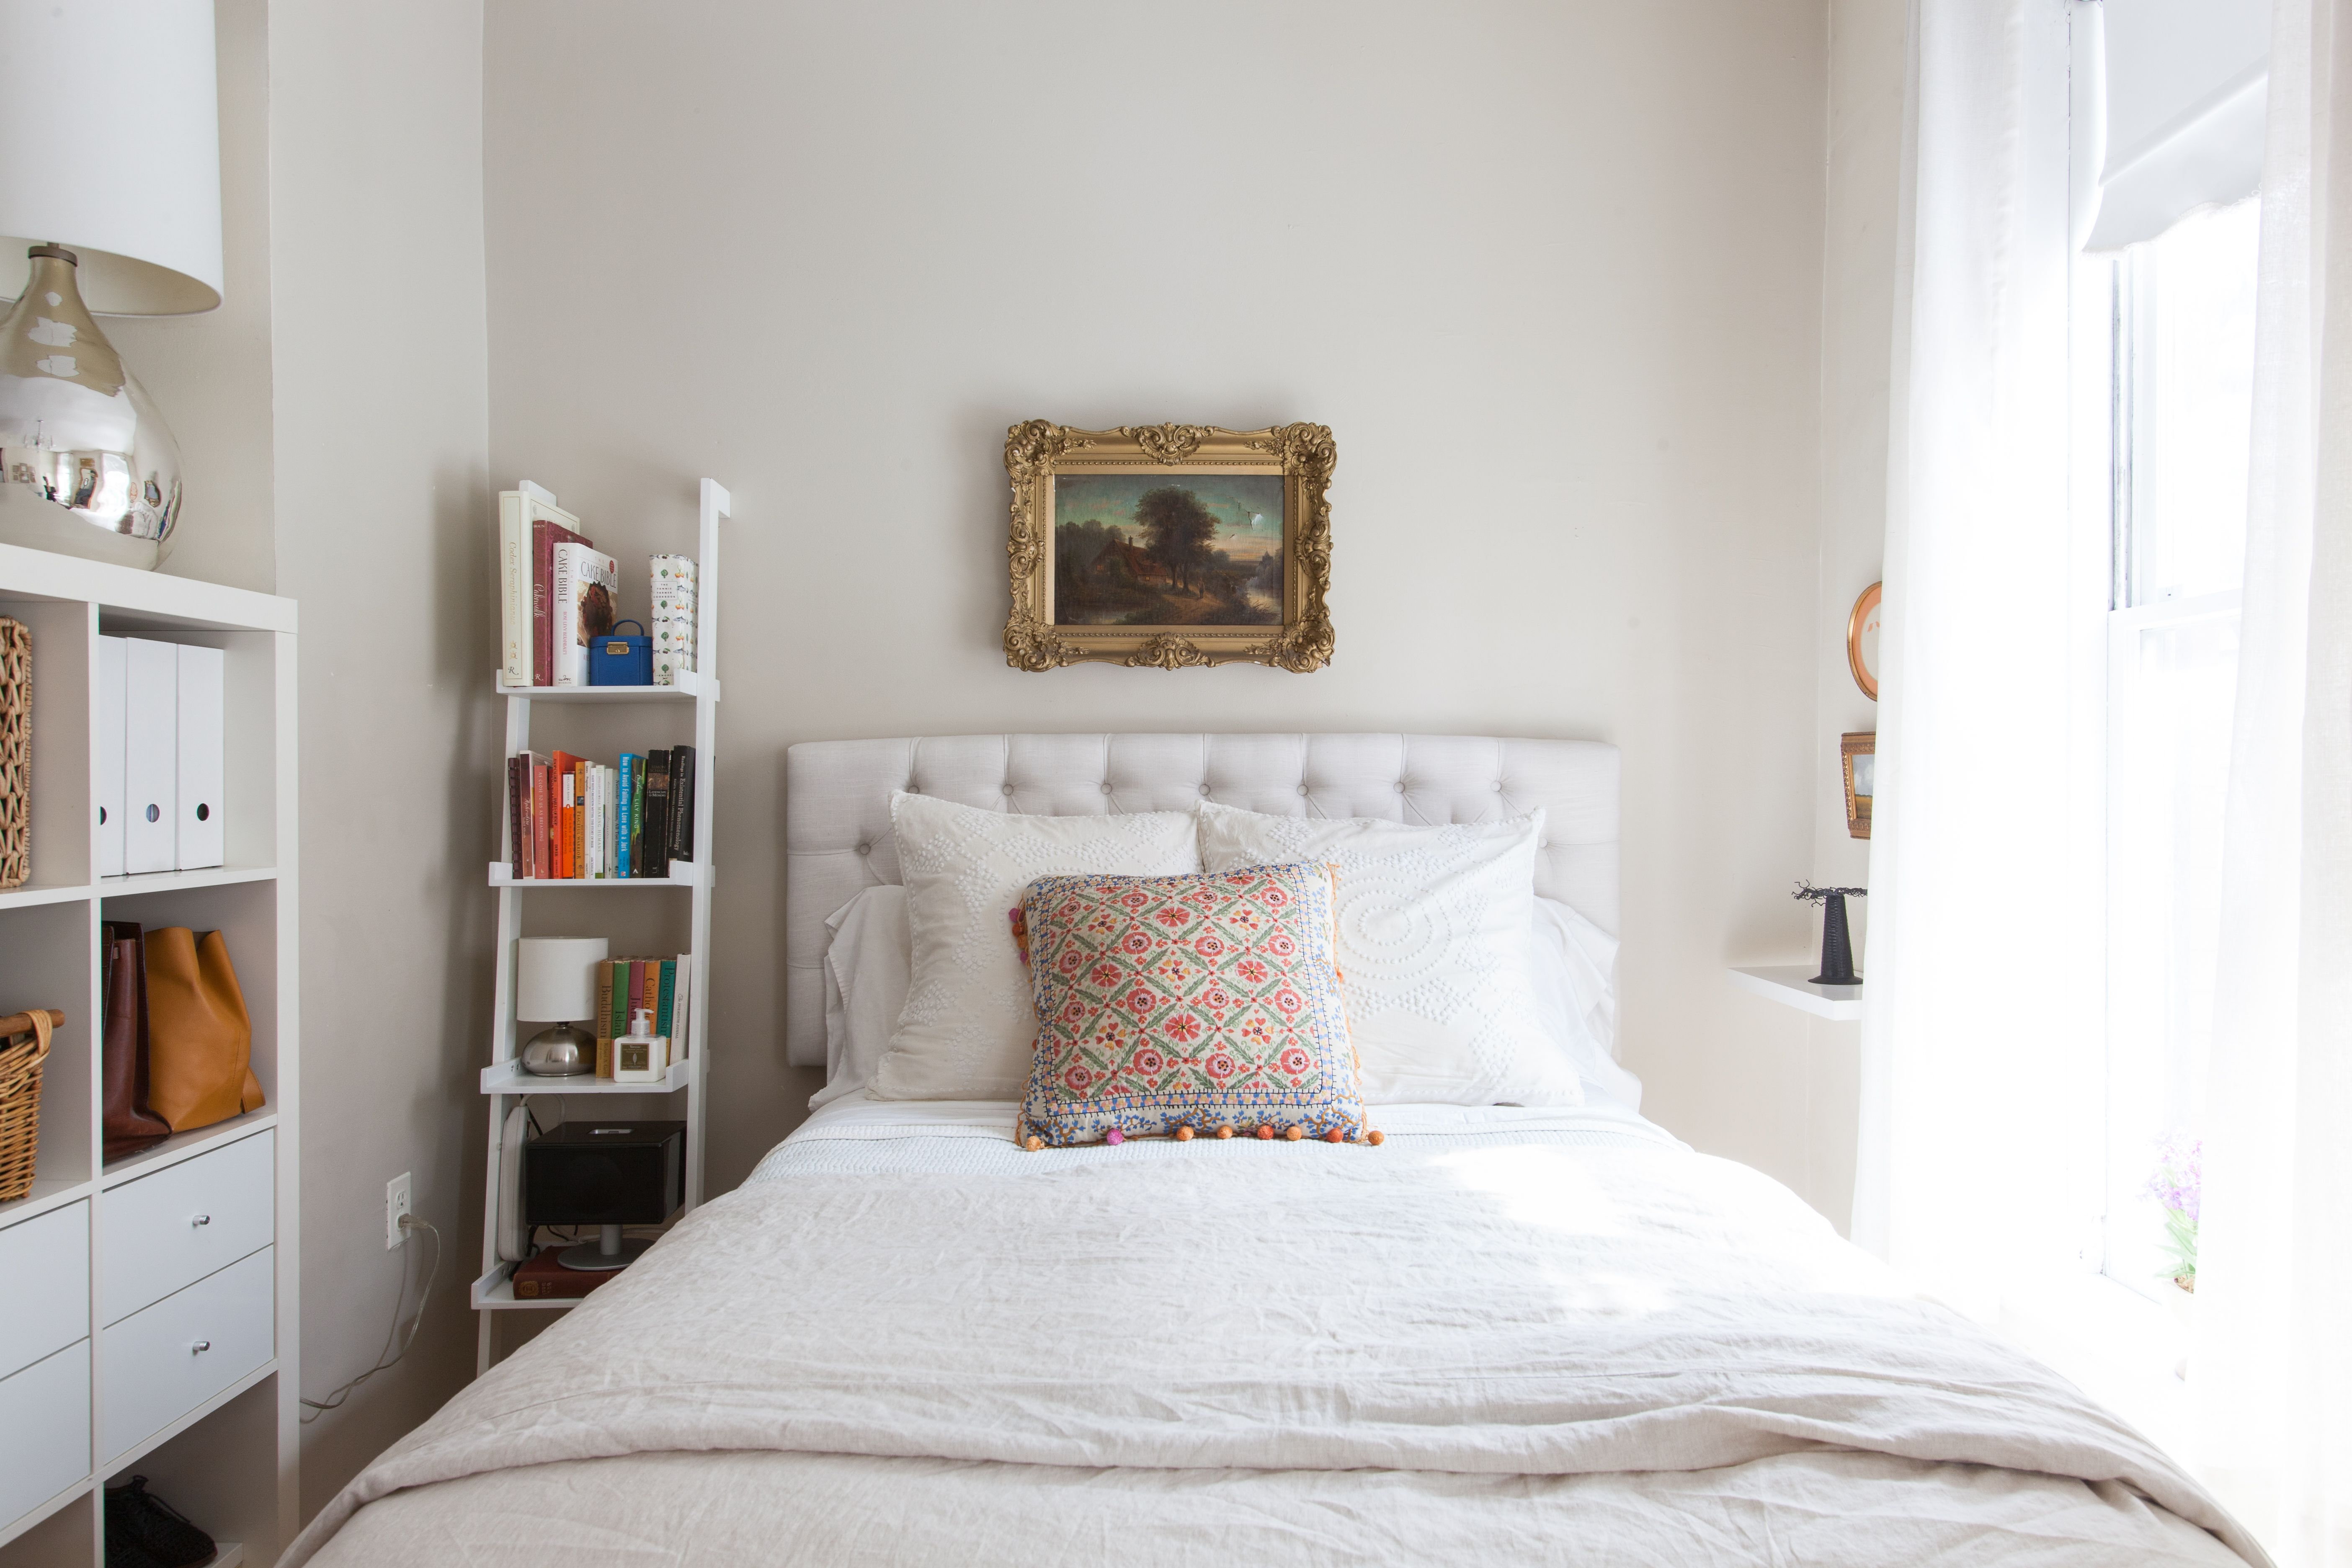 Small Bedroom Ideas: 7 Smart Ways To Get More Storage In Your Sleep Space | Small Bedroom Storage, Small Room Design, Small Bedroom